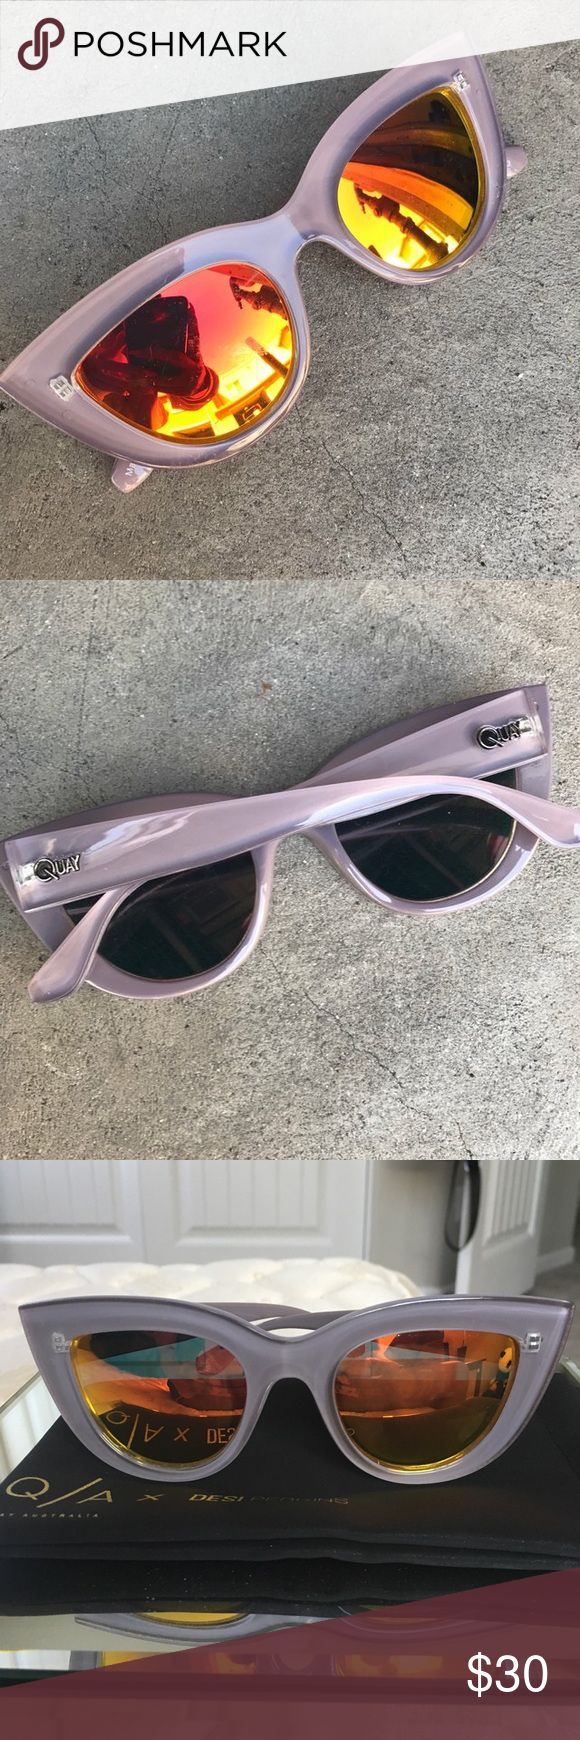 """Quay """"kitti"""" sunglasses Adorable Quay brand sunglasses, lavender colored, popular cat-eye style, with warm reflective lenses. Perfect for summer! Selling because they don't fit my nose bridge, last pic is from website to show how they look on, comes with case. Quay Australia Accessories Sunglasses"""